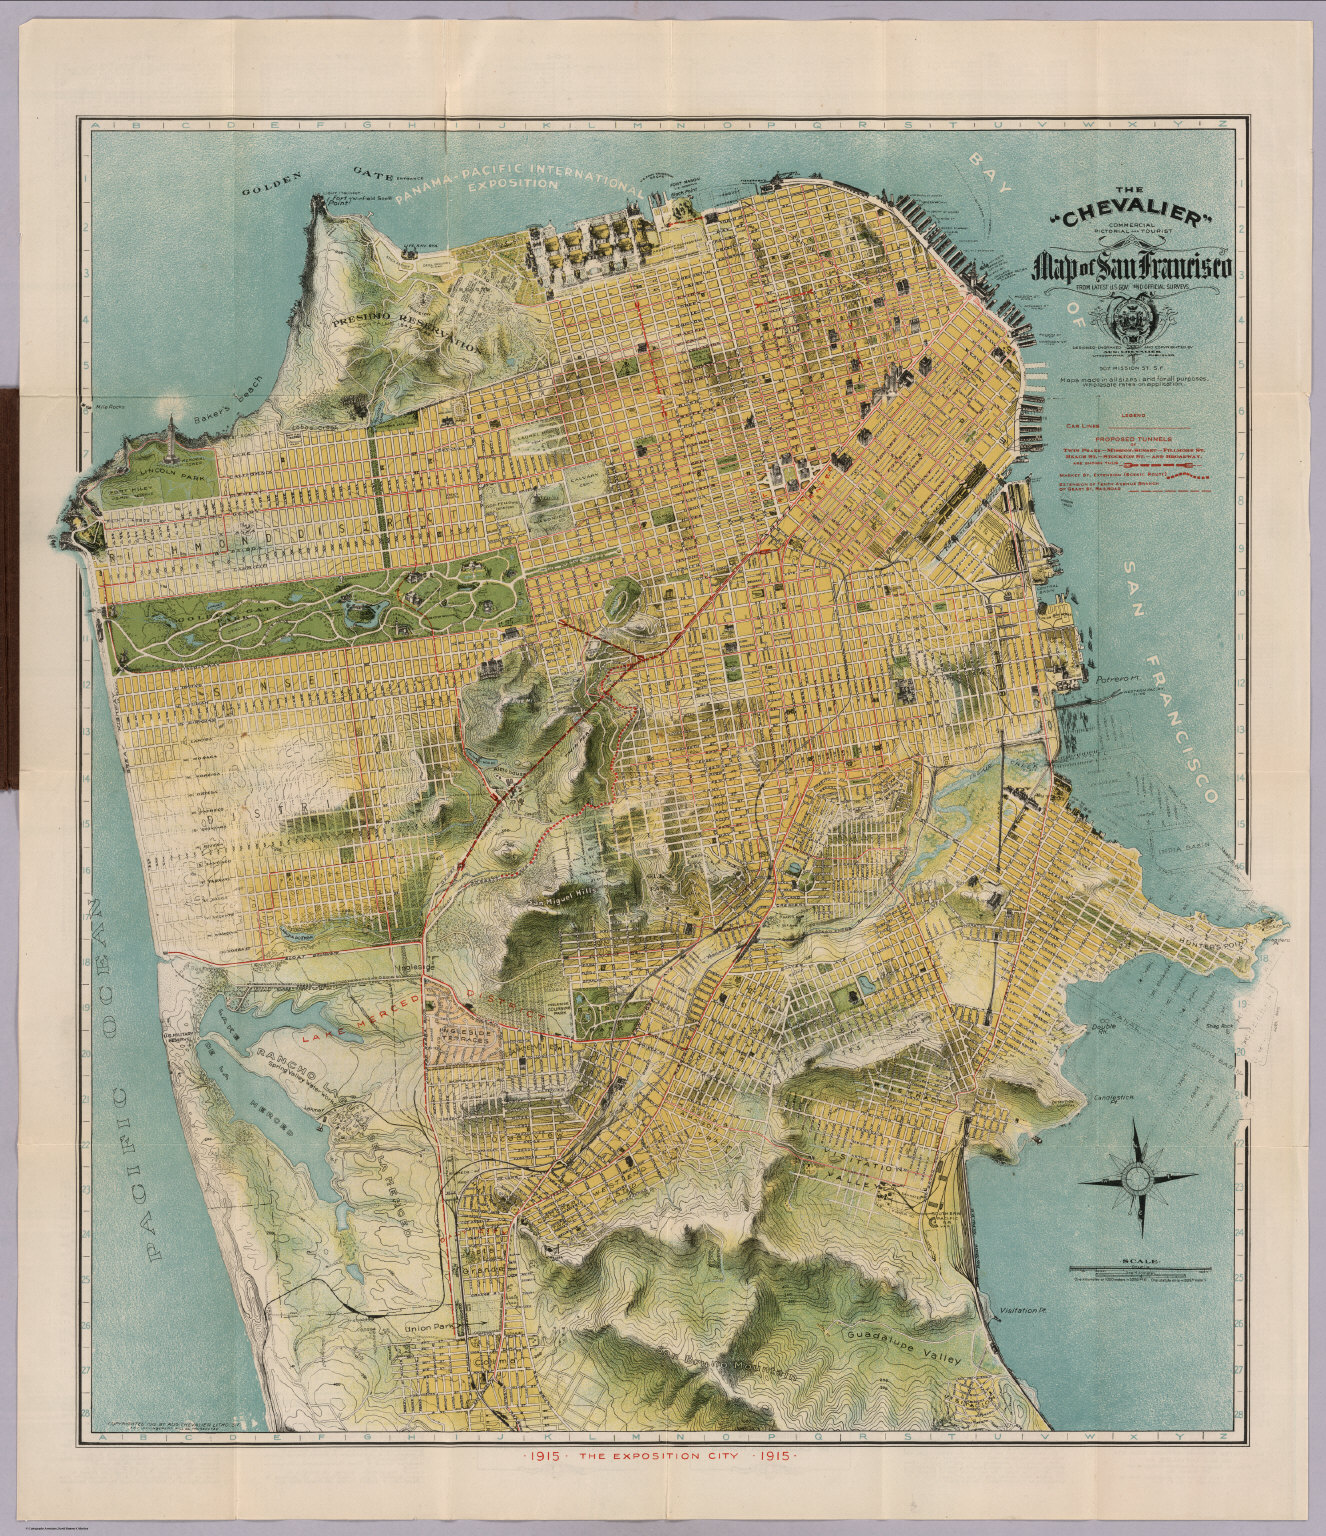 San Francisco From The David Rumsey Map Collection Sfo Museum